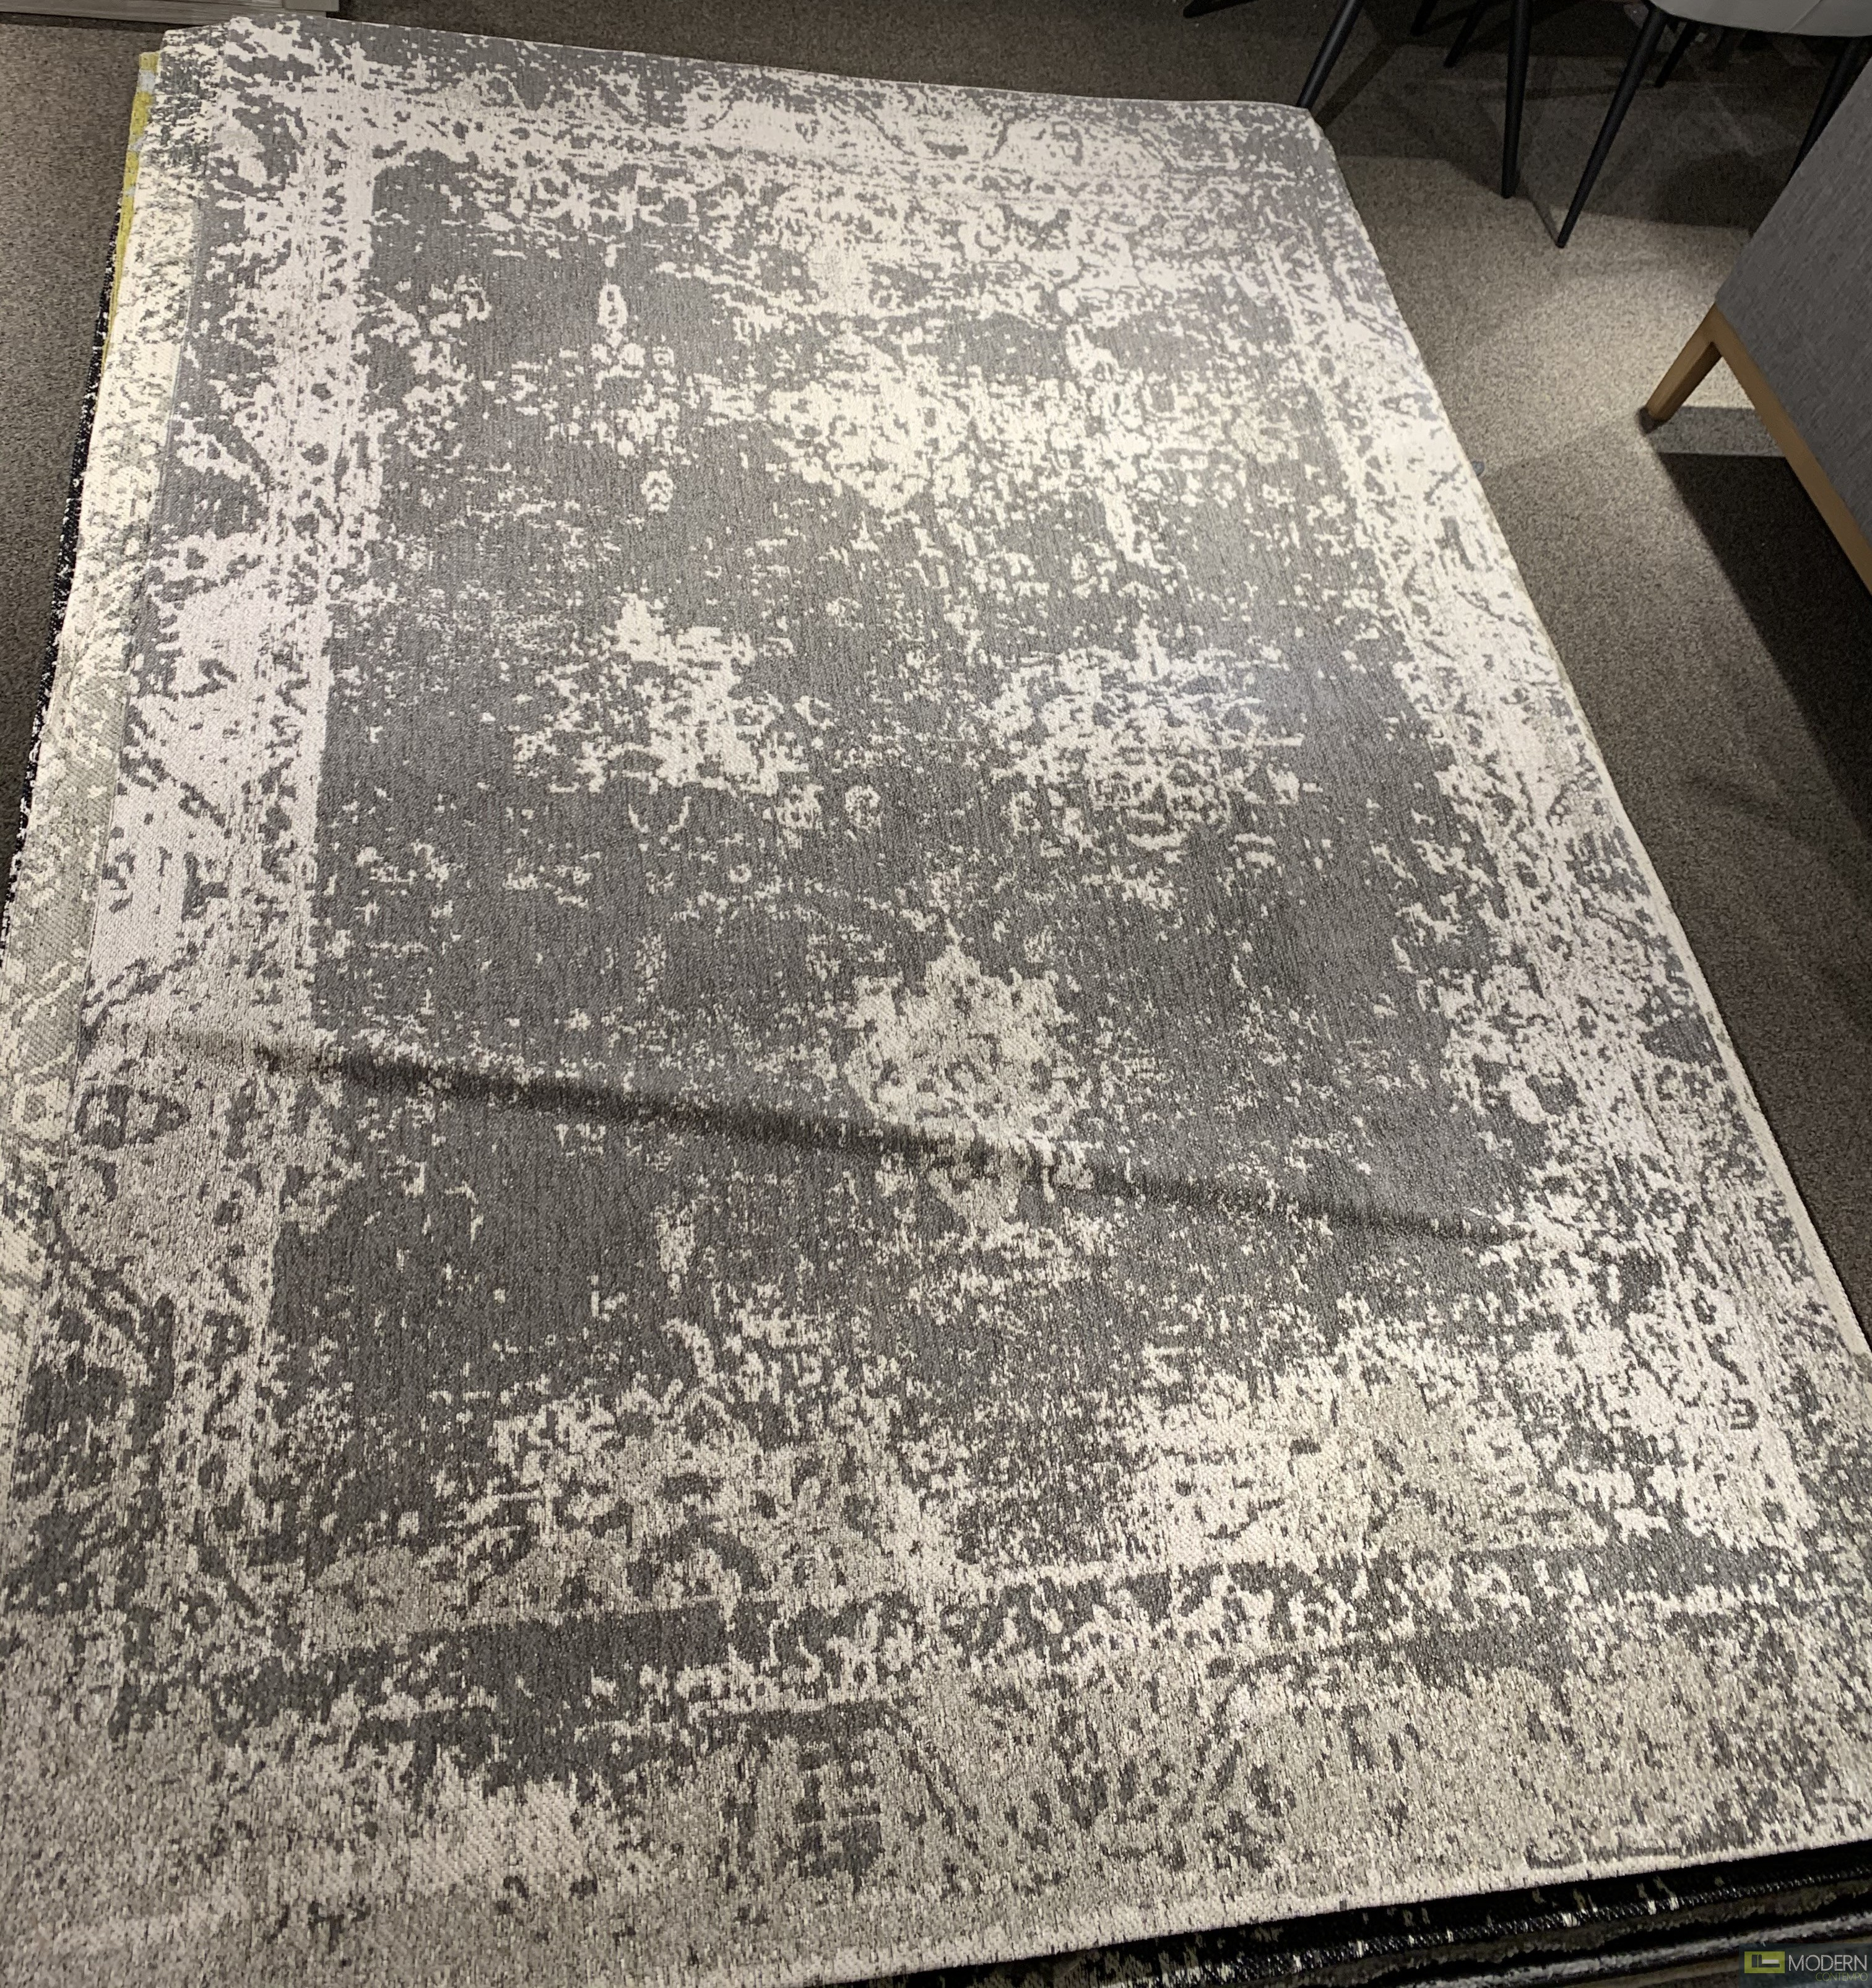 GYPSY light Gray and White Rug